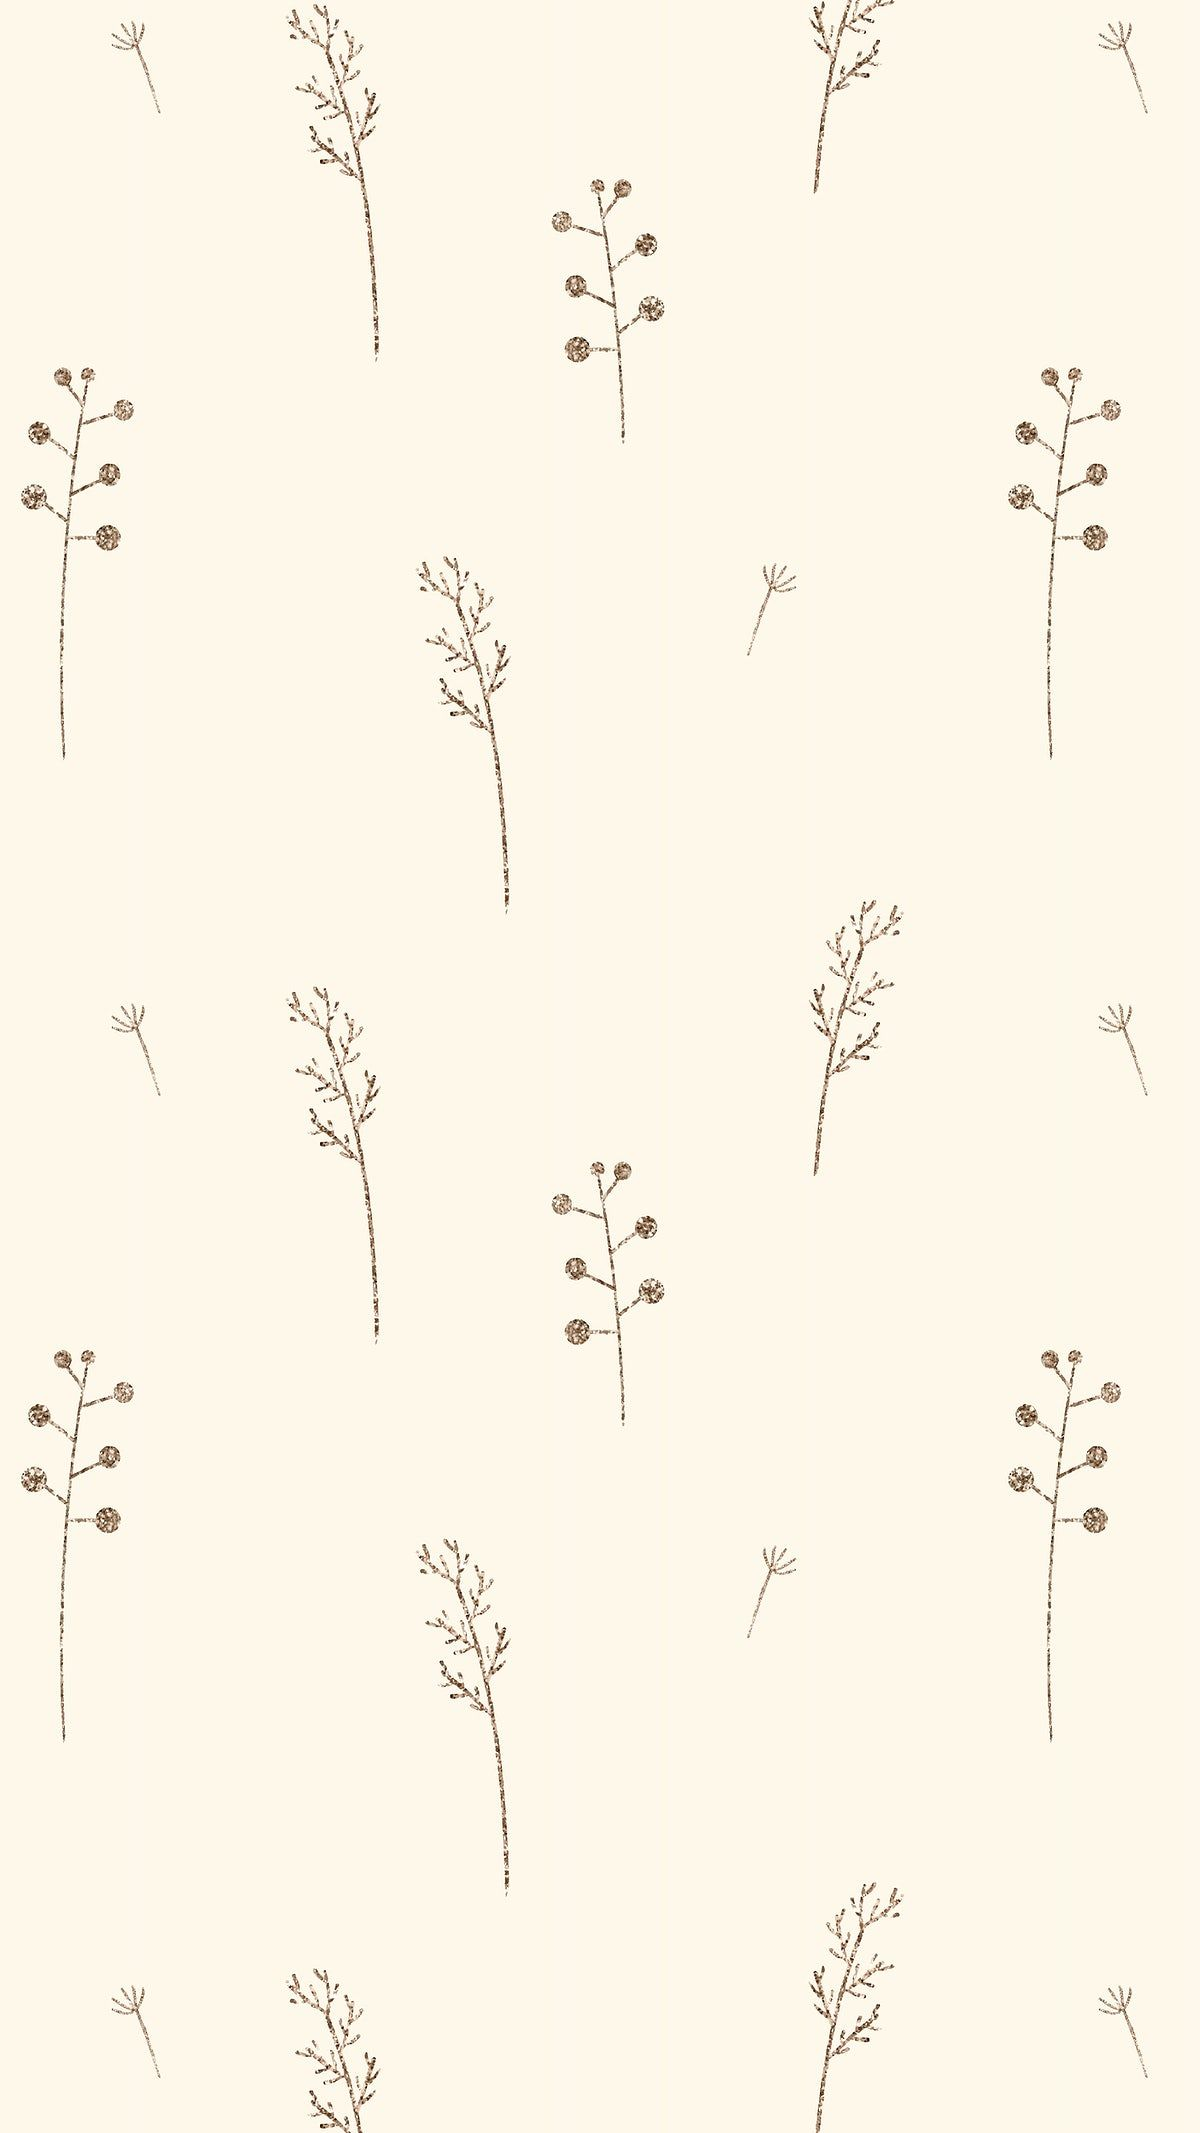 Download premium vector of Botanical mobile phone wallpaper vector by marinemynt about iphone wallpaper flower pattern, instagram story background flower, glitter, flower, and winter floral pattern background 1228238